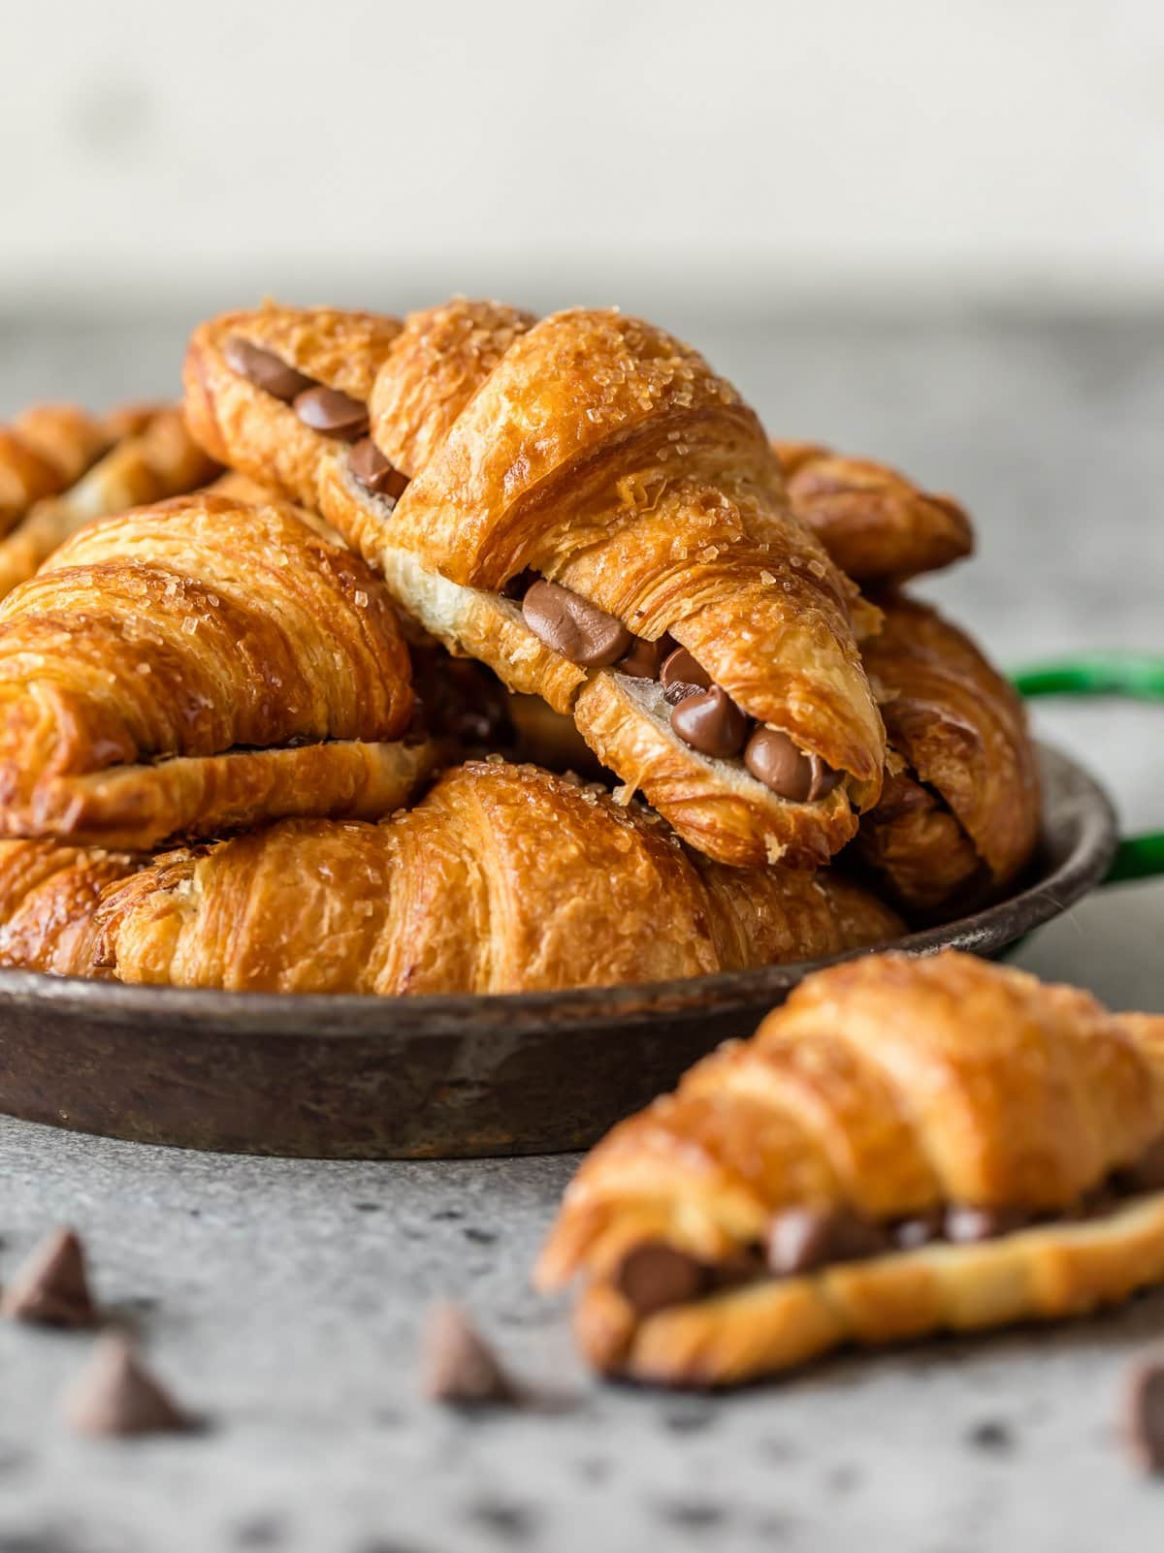 Chocolate Croissant Recipe - Easy Chocolate Croissants for a Crowd